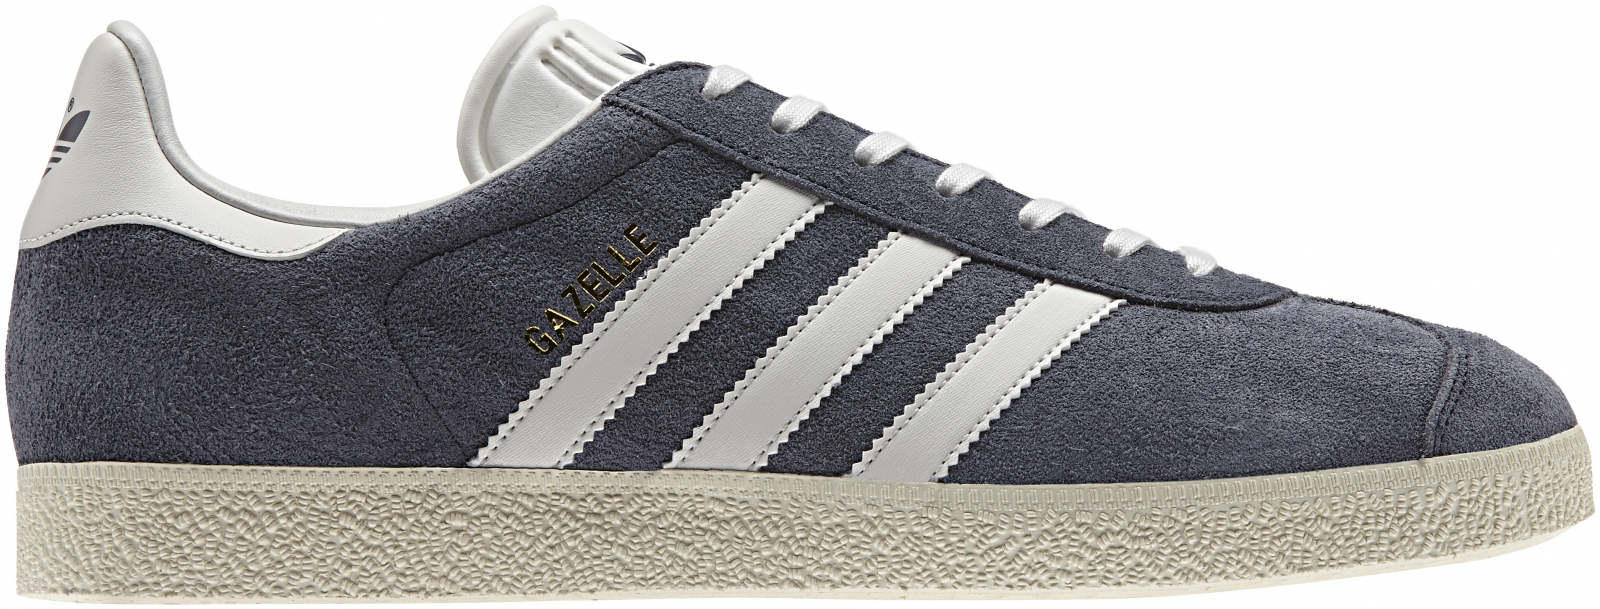 Adidas Gazelle relaunch: Classic terrace shoe revived in time for Euro 2016